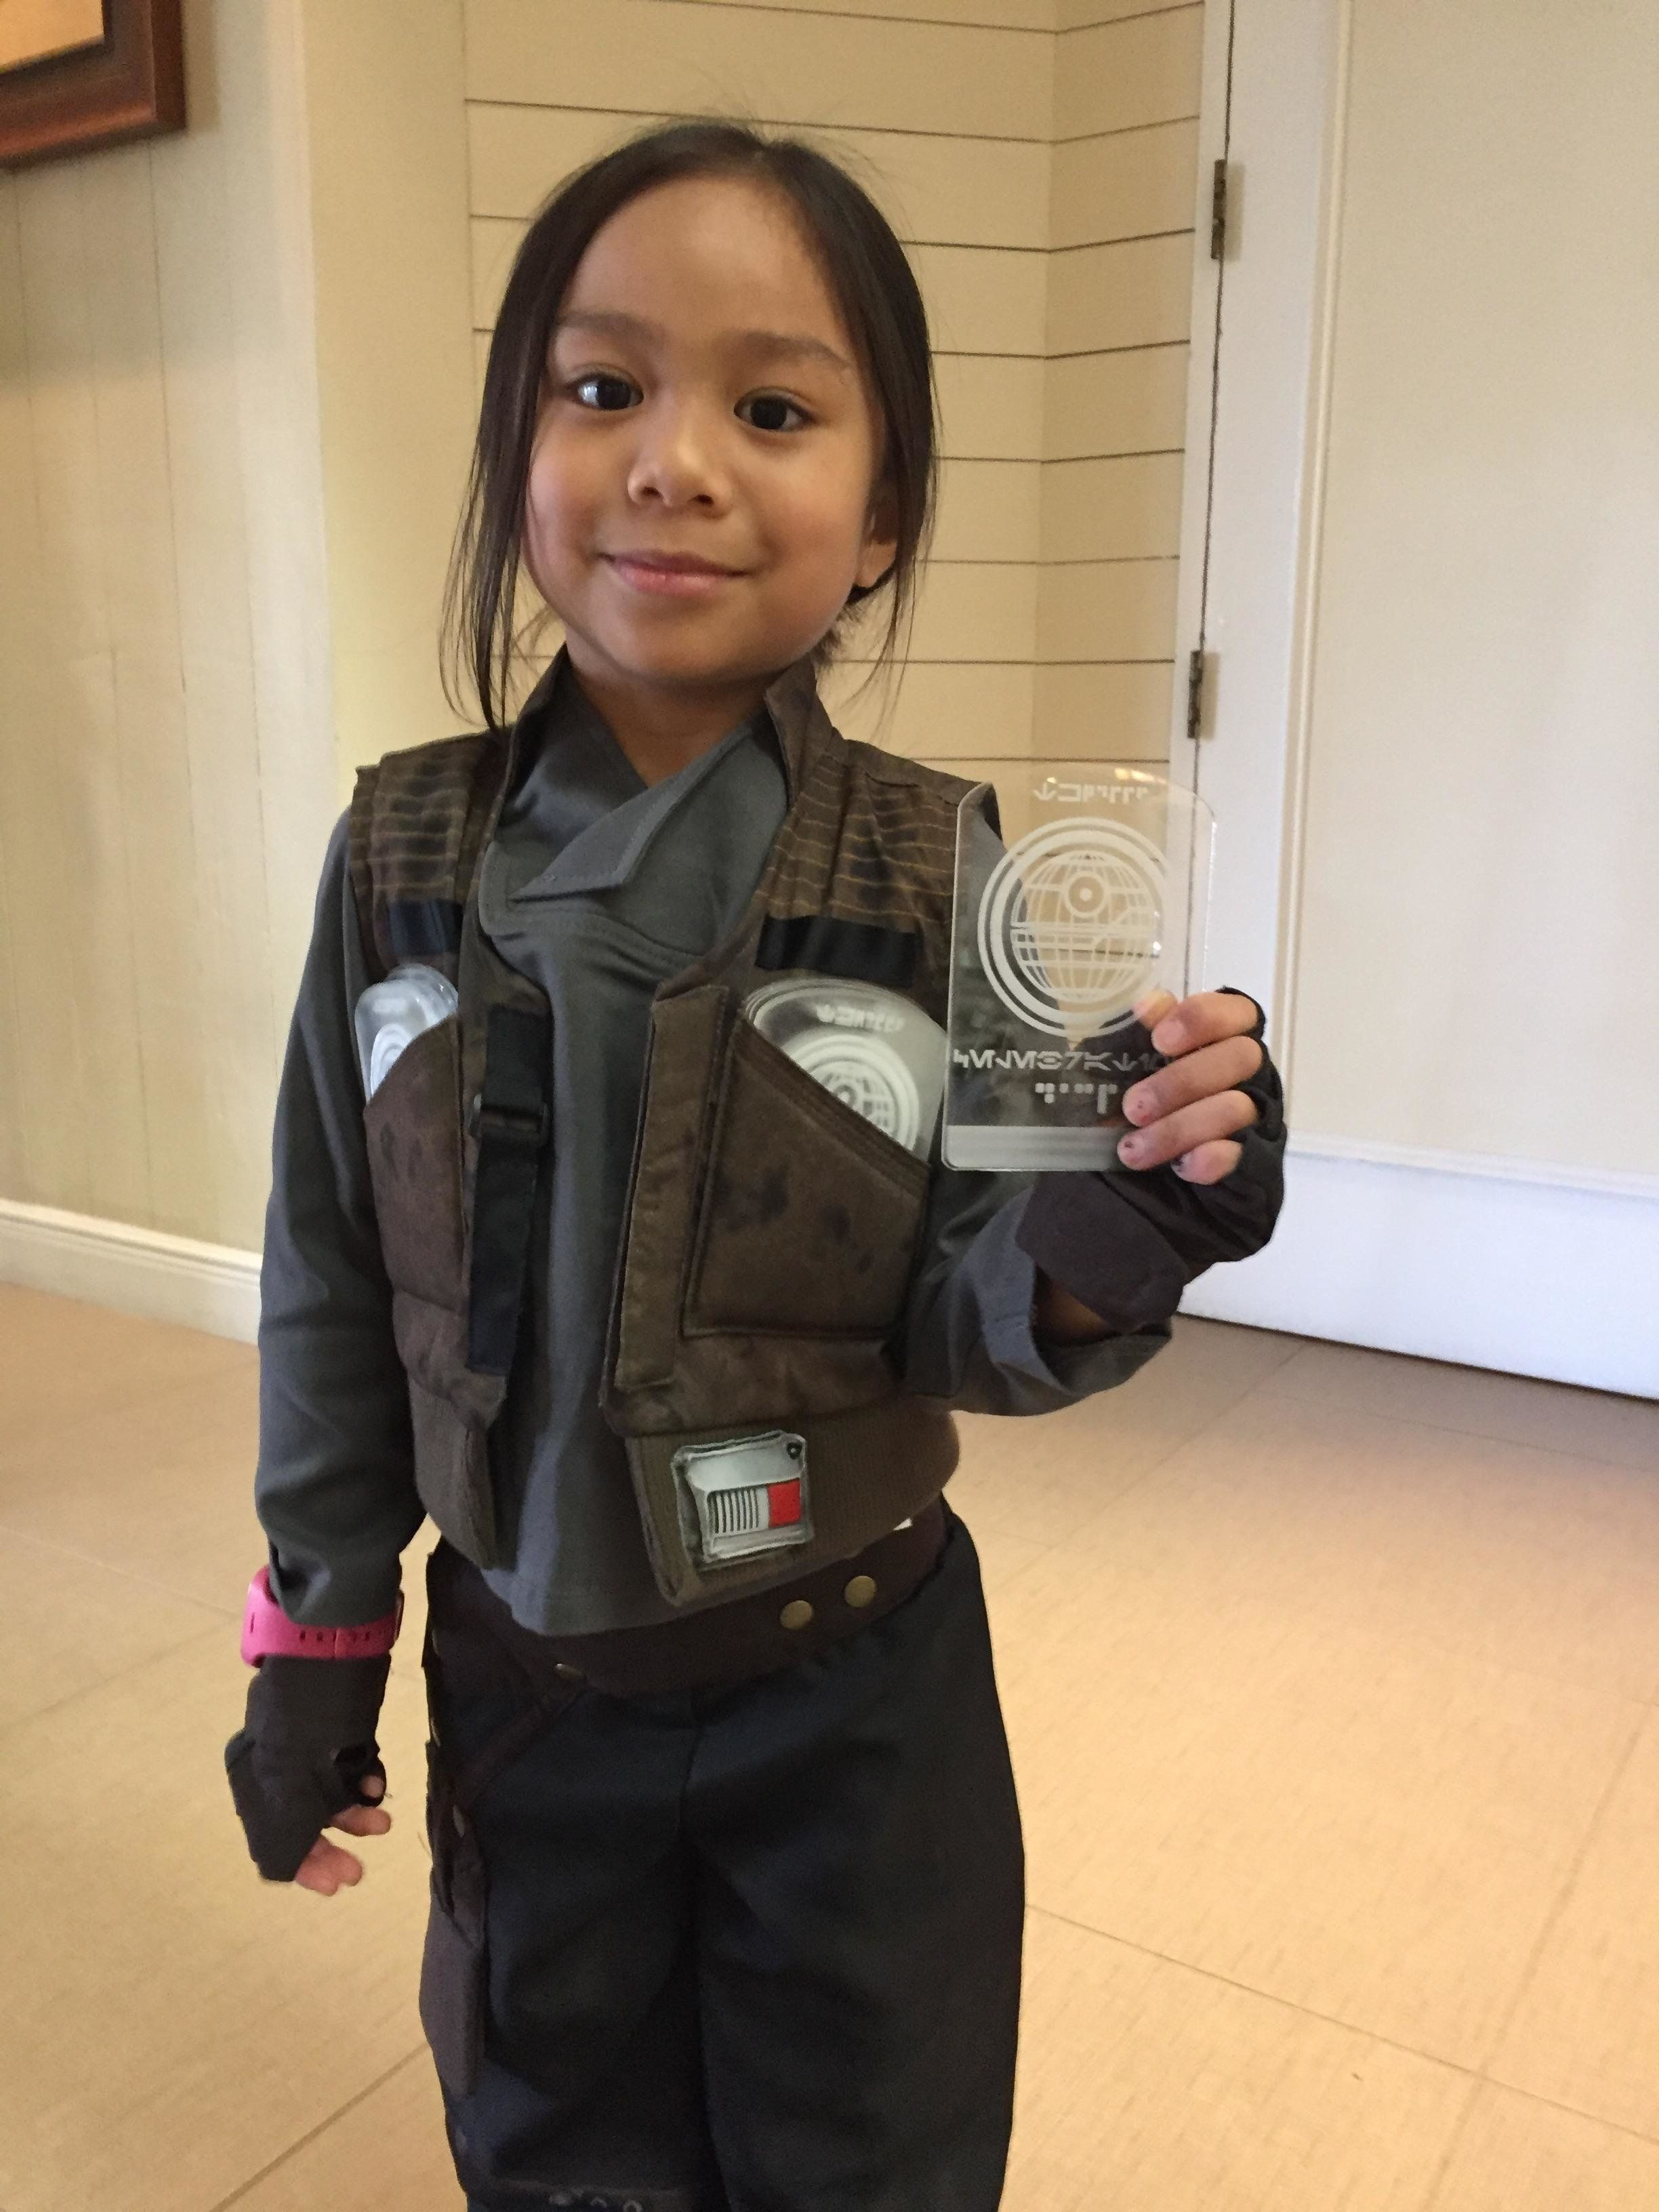 Ignacio said his daughter met about 20 different people dressed as Leia.